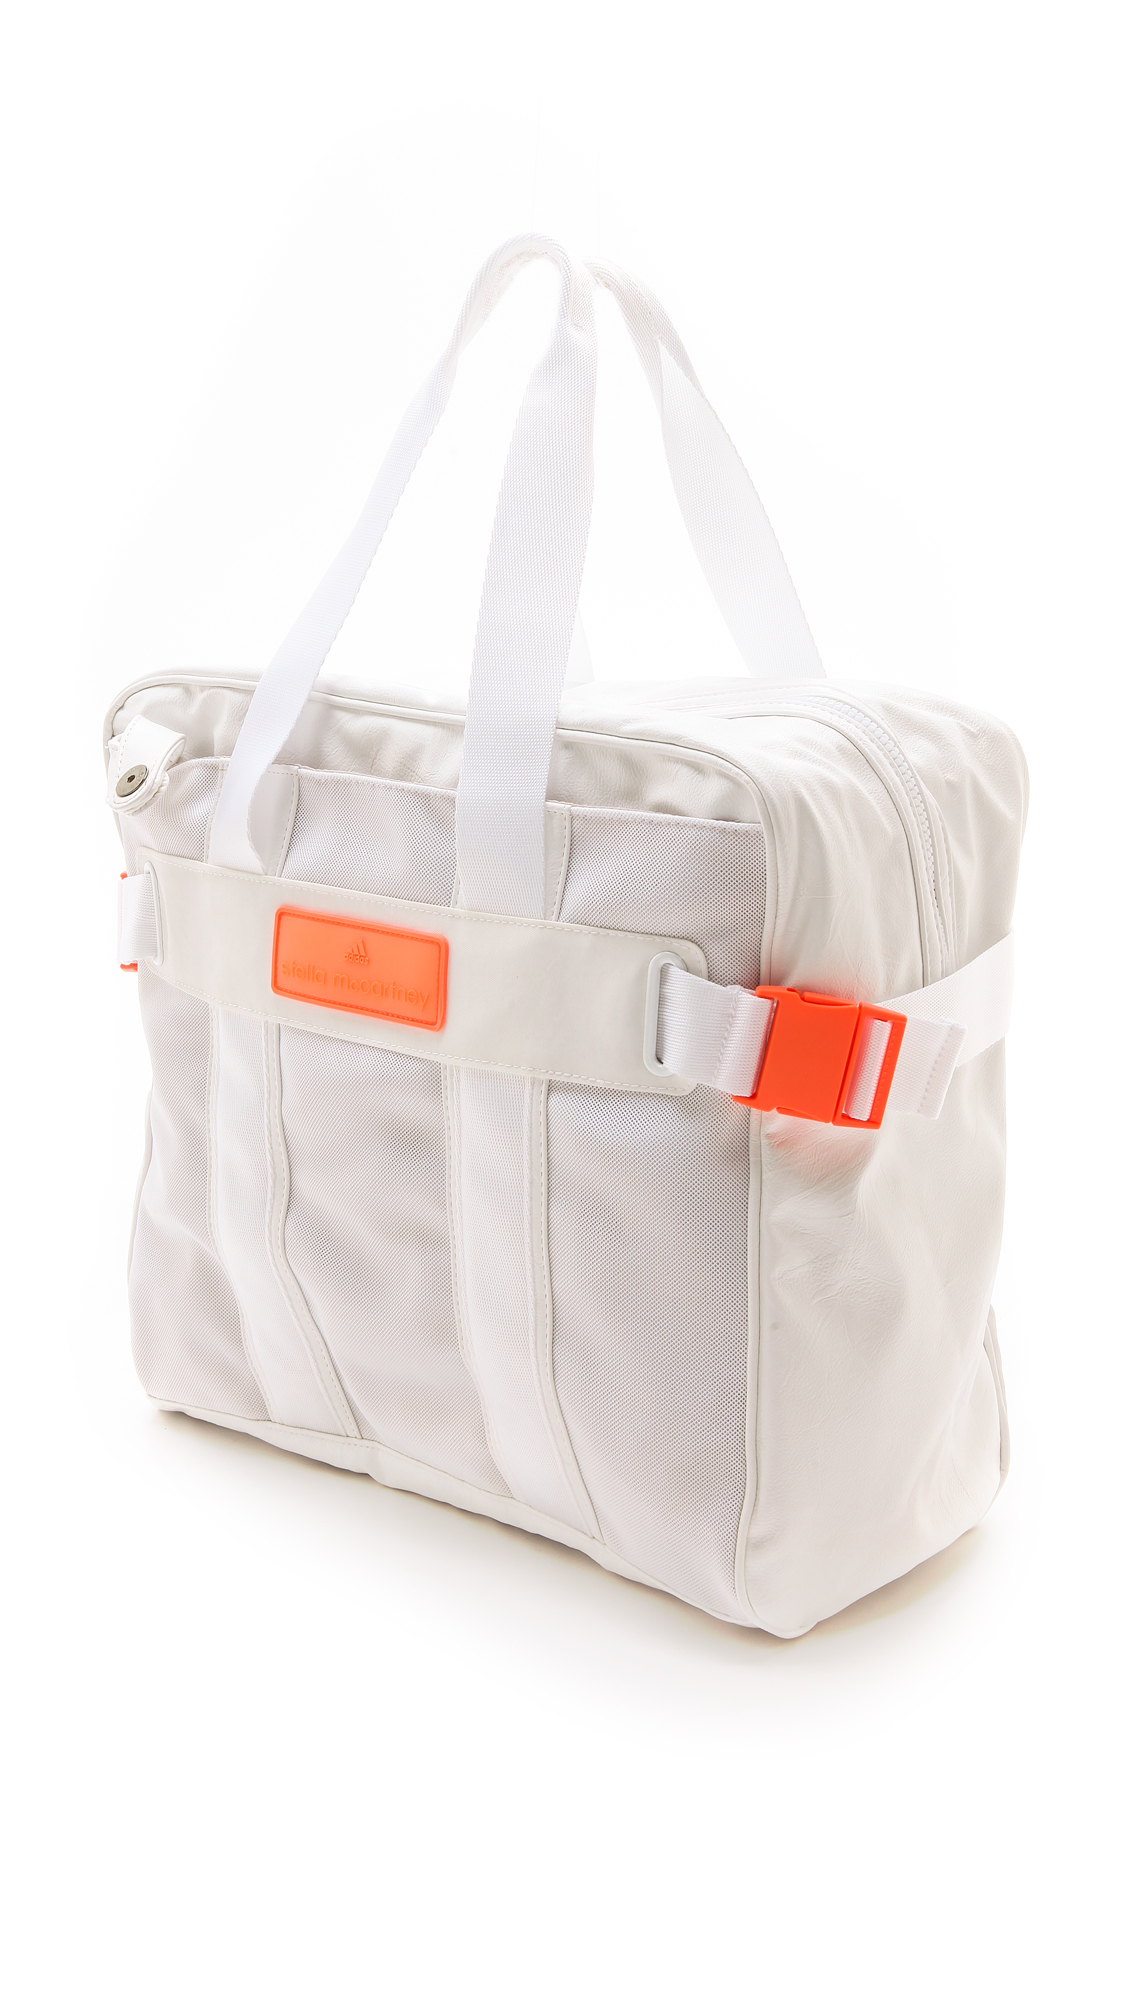 adidas by Stella McCartney BA Tennis Bag   SHOPBOP d448fef883